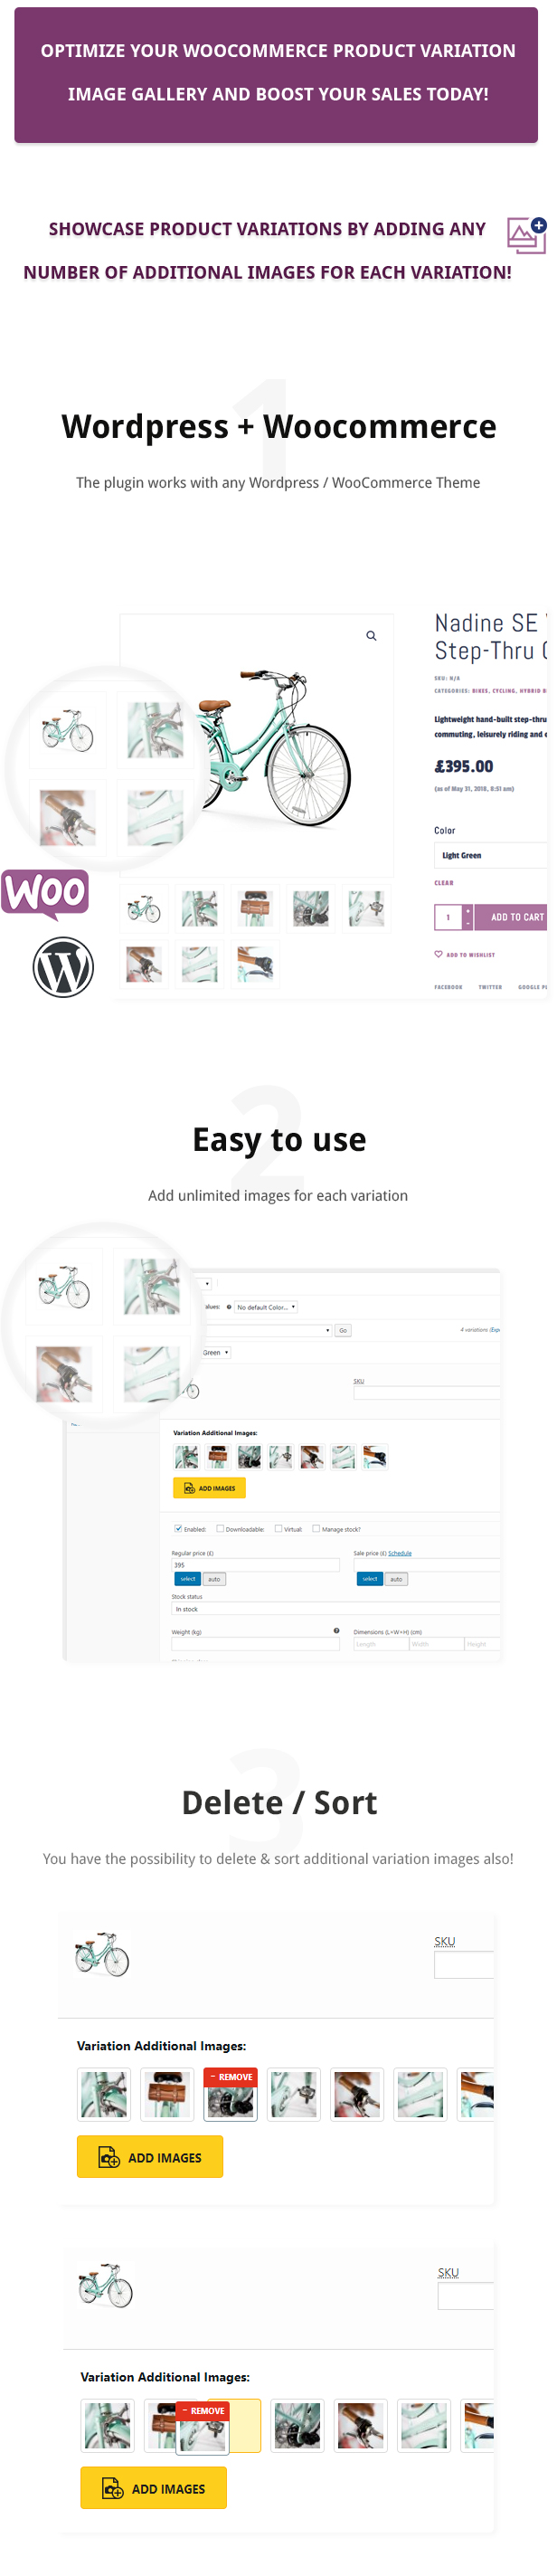 Additional Variation Images Plugin for WooCommerce - 2 Additional Variation Images Plugin for WooCommerce - WAVI - Additional Variation Images Plugin for WooCommerce